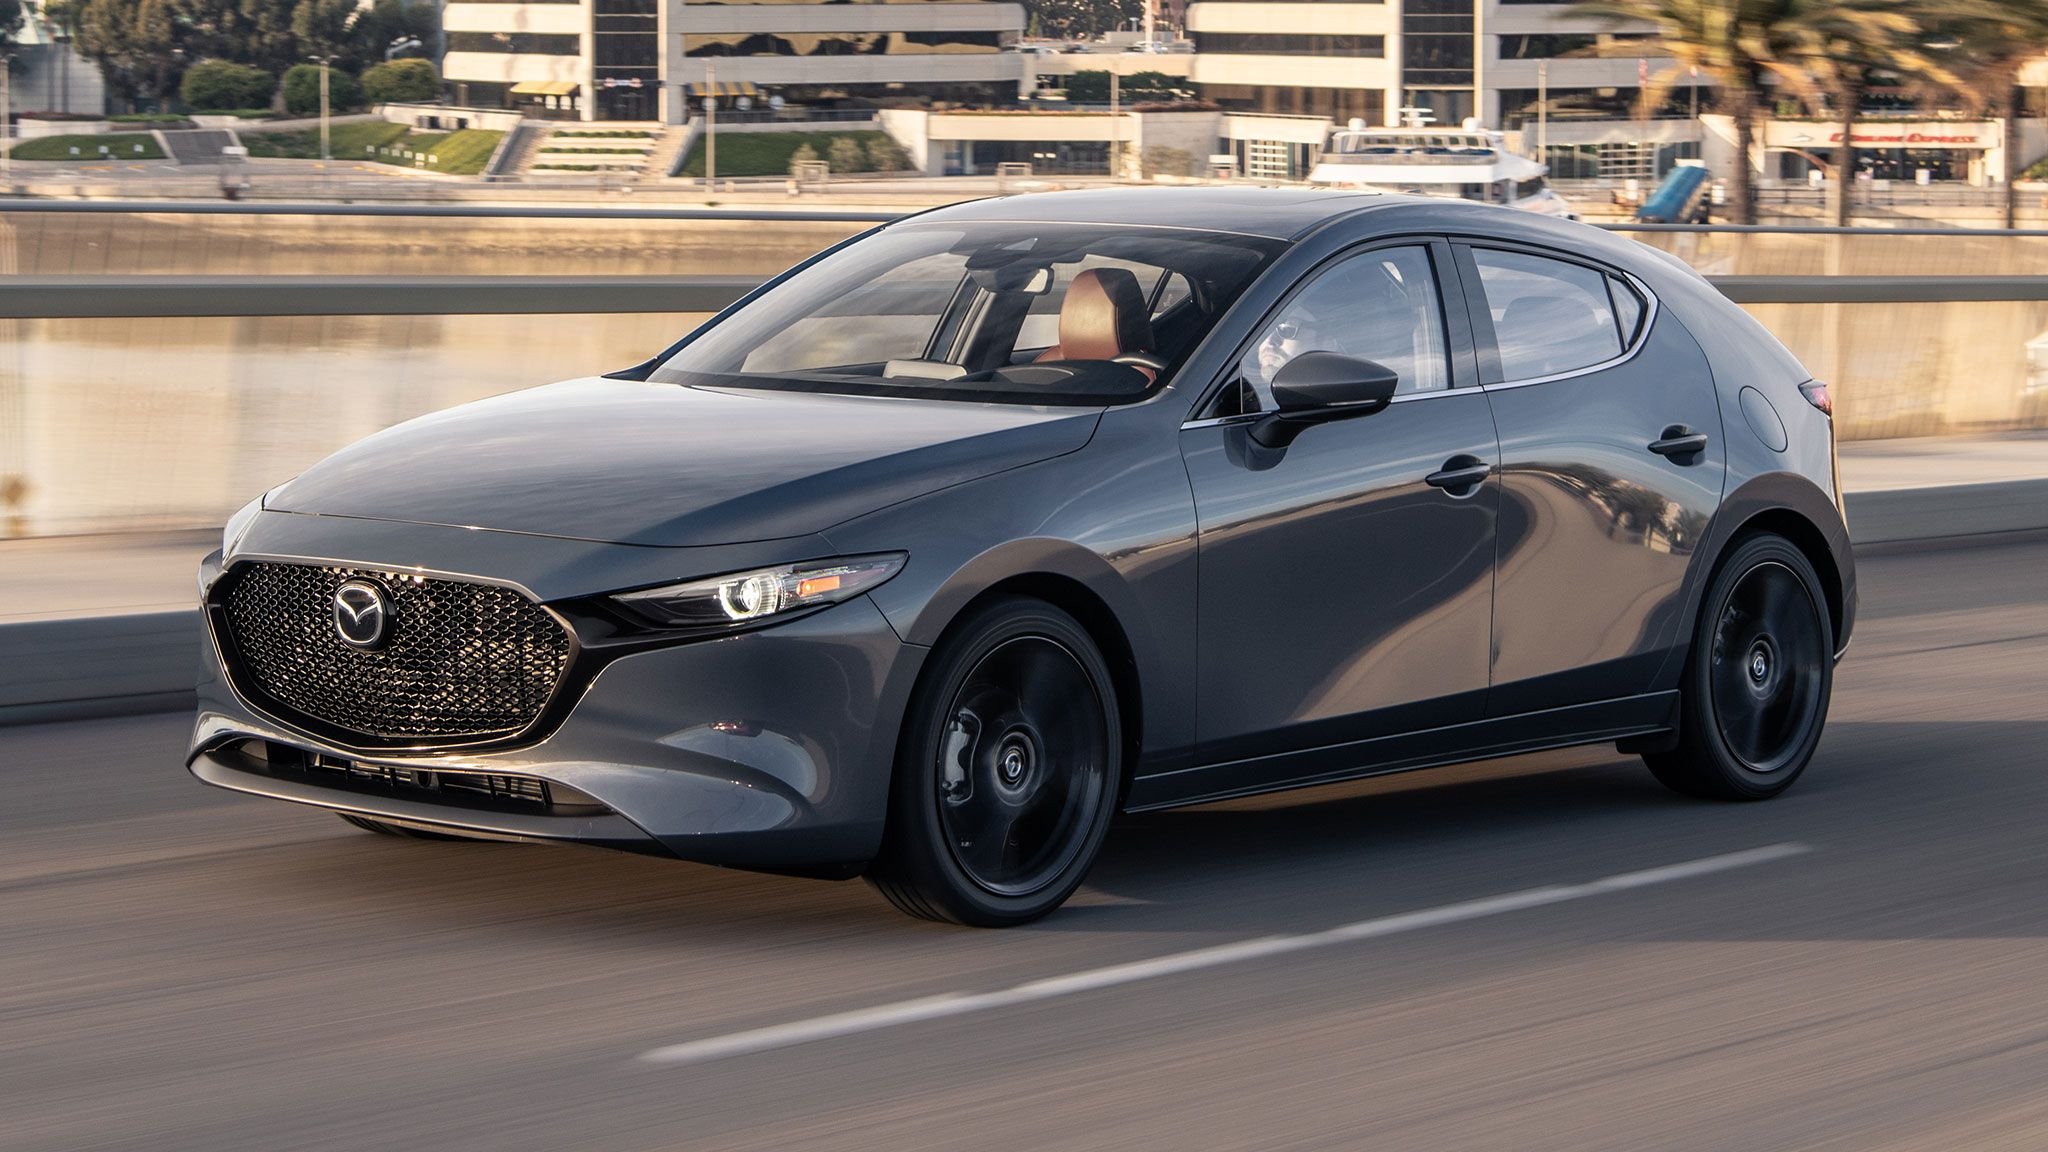 Mazda Teases Turbocharged 3 Teased Prior To July 8th Reveal In 2020 Mazda Mazda 3 Turbocharger